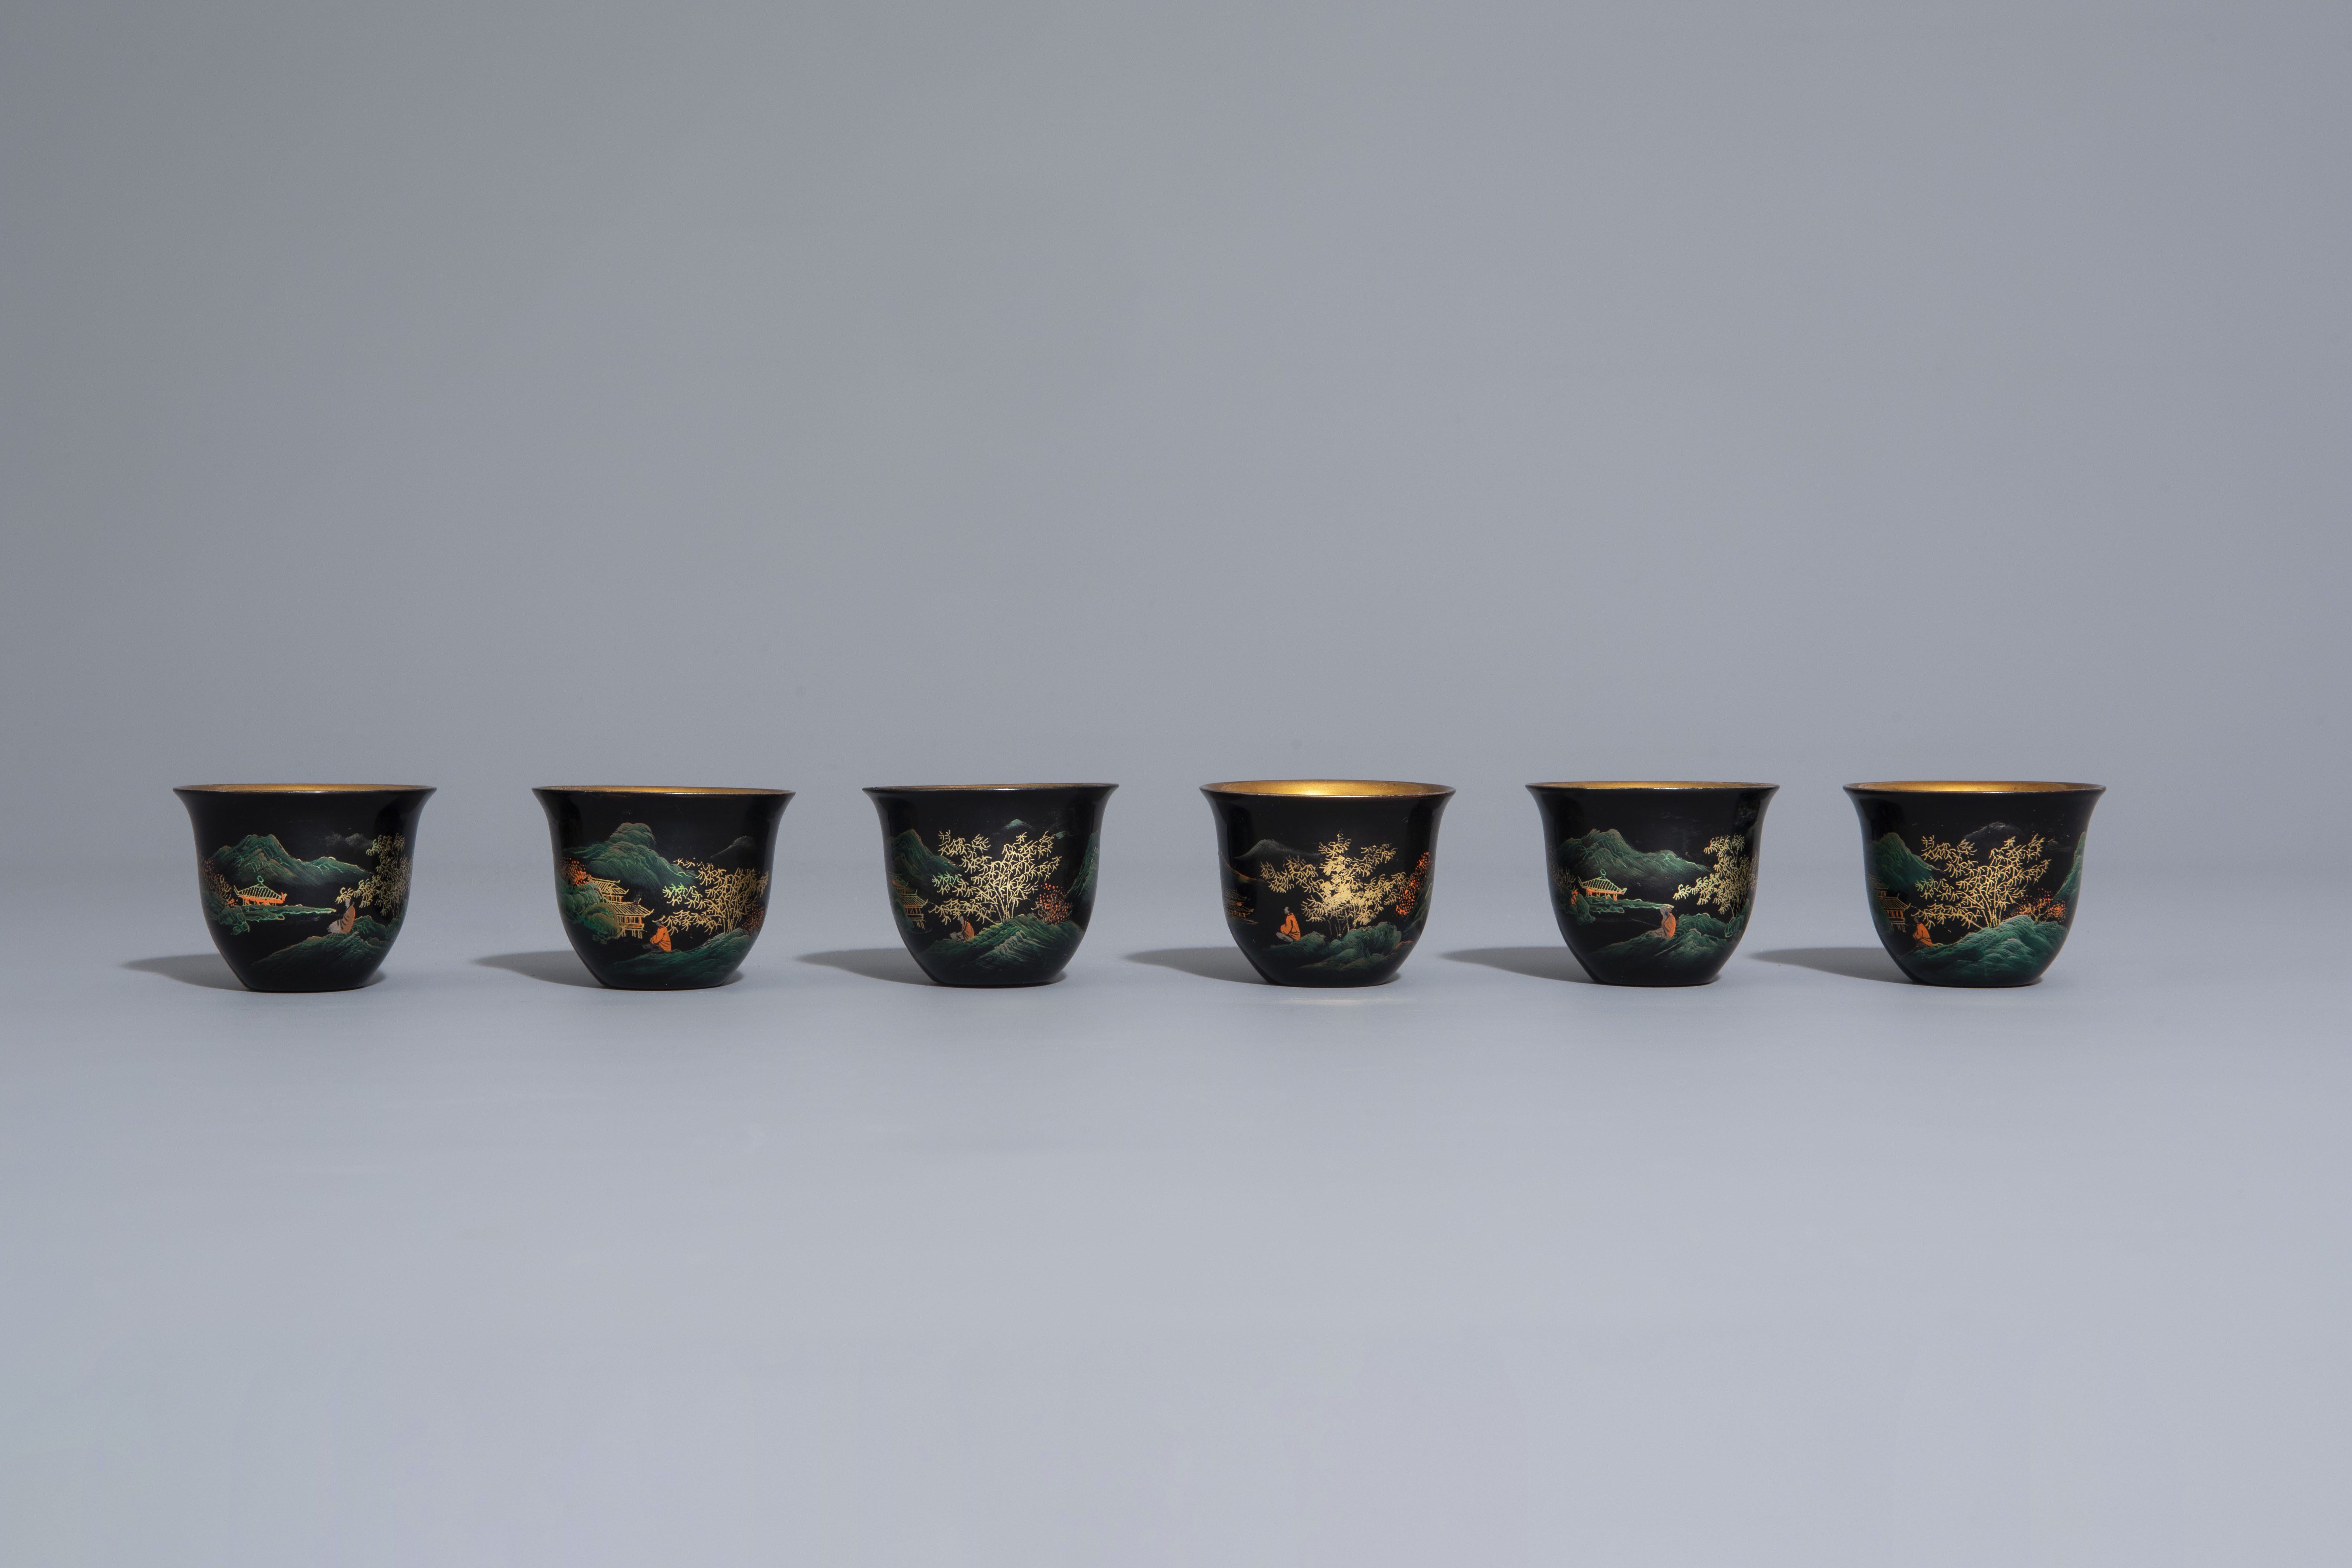 An extensive Chinese Foochow lacquer Shen Shao'an style coffee and tea service, 20th C. - Image 19 of 23